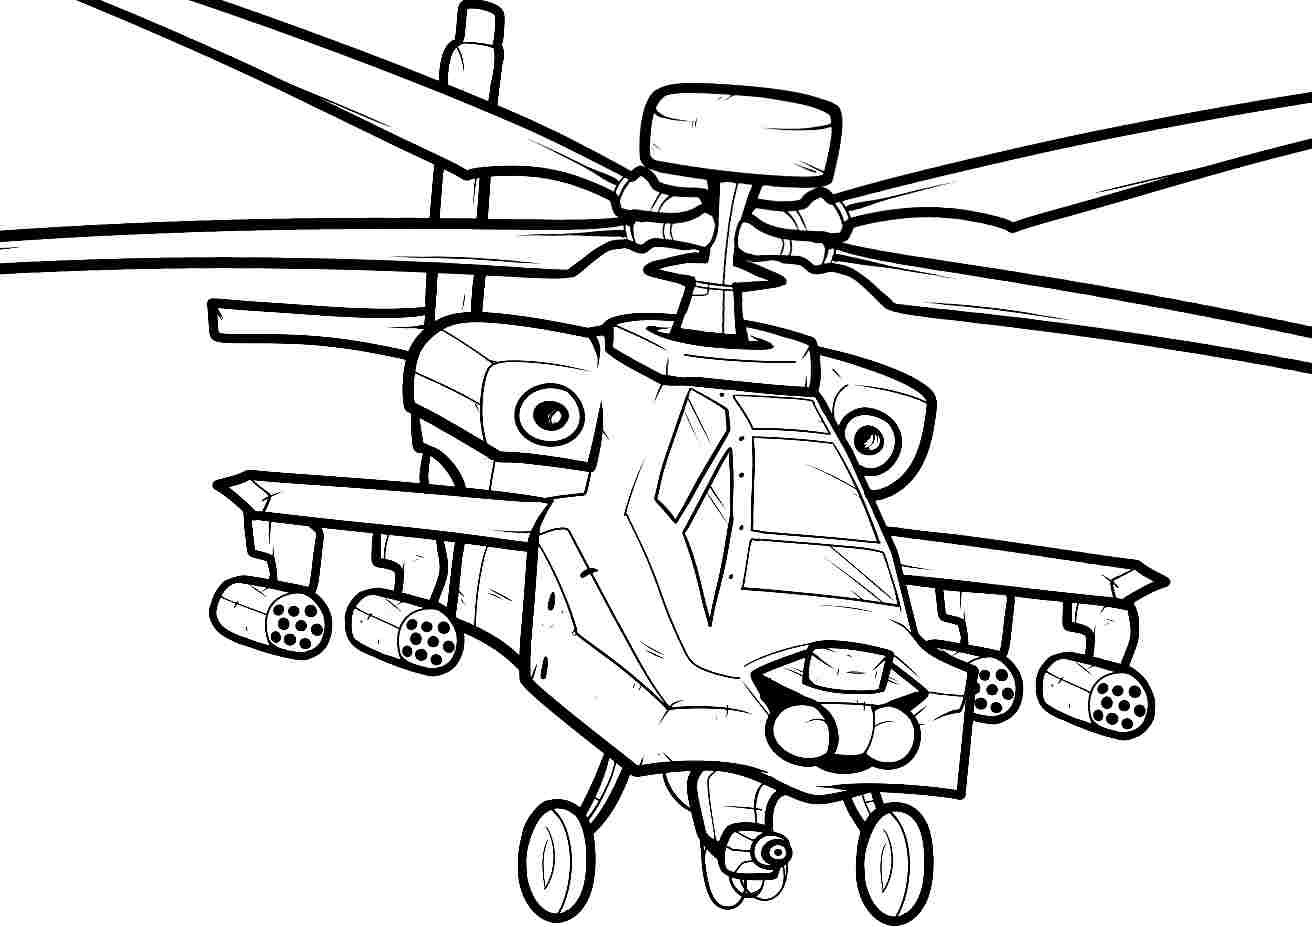 helicopter colouring pages helicopters coloring pages download and print helicopters pages helicopter colouring